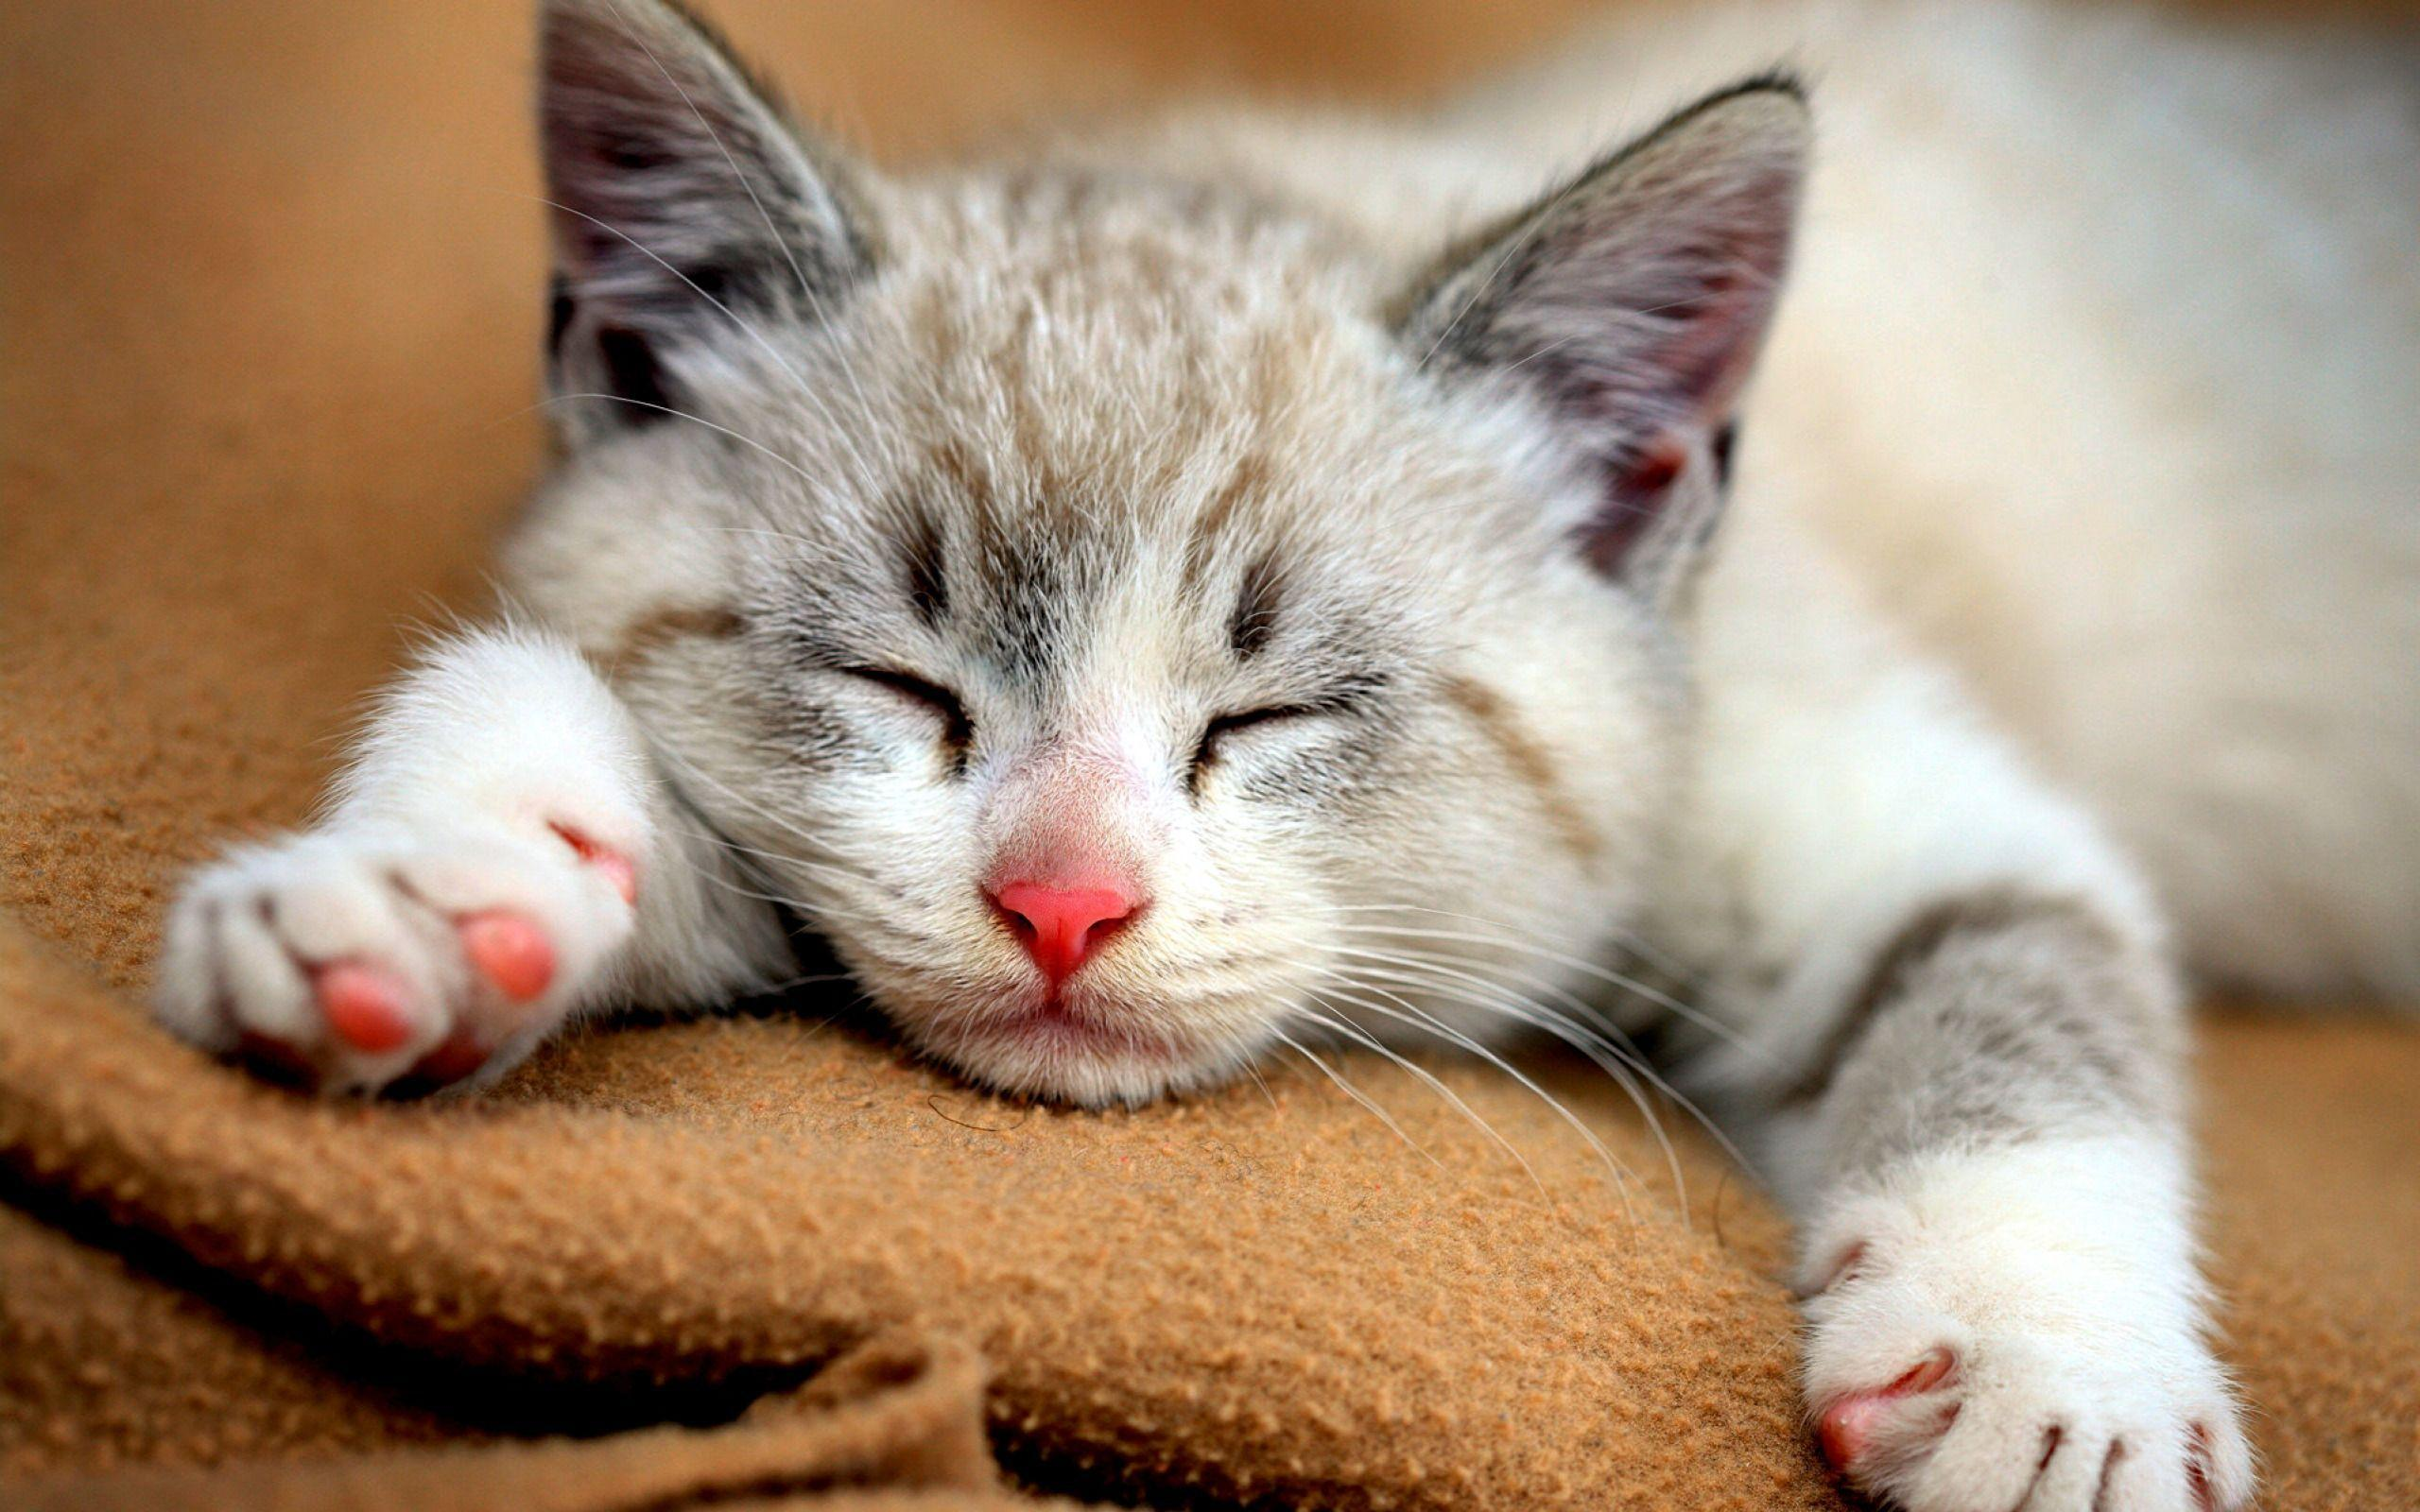 Cute Cat Wallpapers - Trawel India Mails |Cute Cat Backgrounds